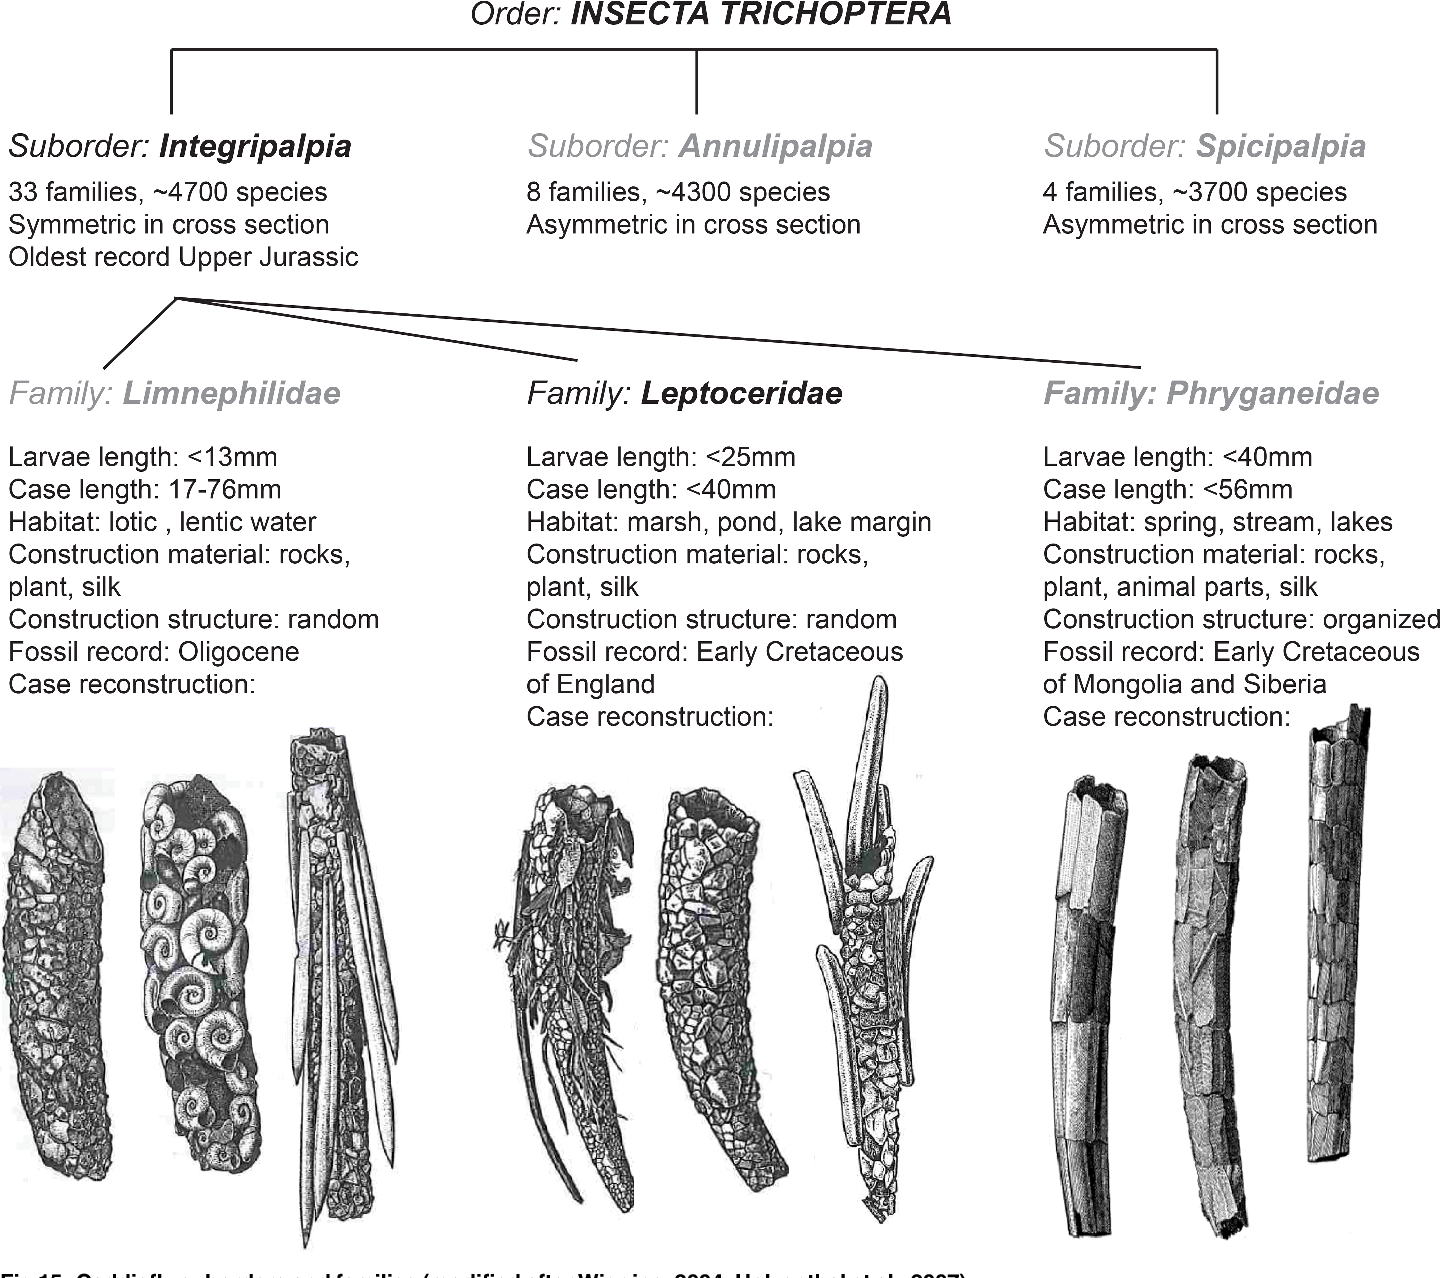 Fig 15. Caddisfly suborders and families (modified after Wiggins, 2004; Holzenthal et al., 2007).